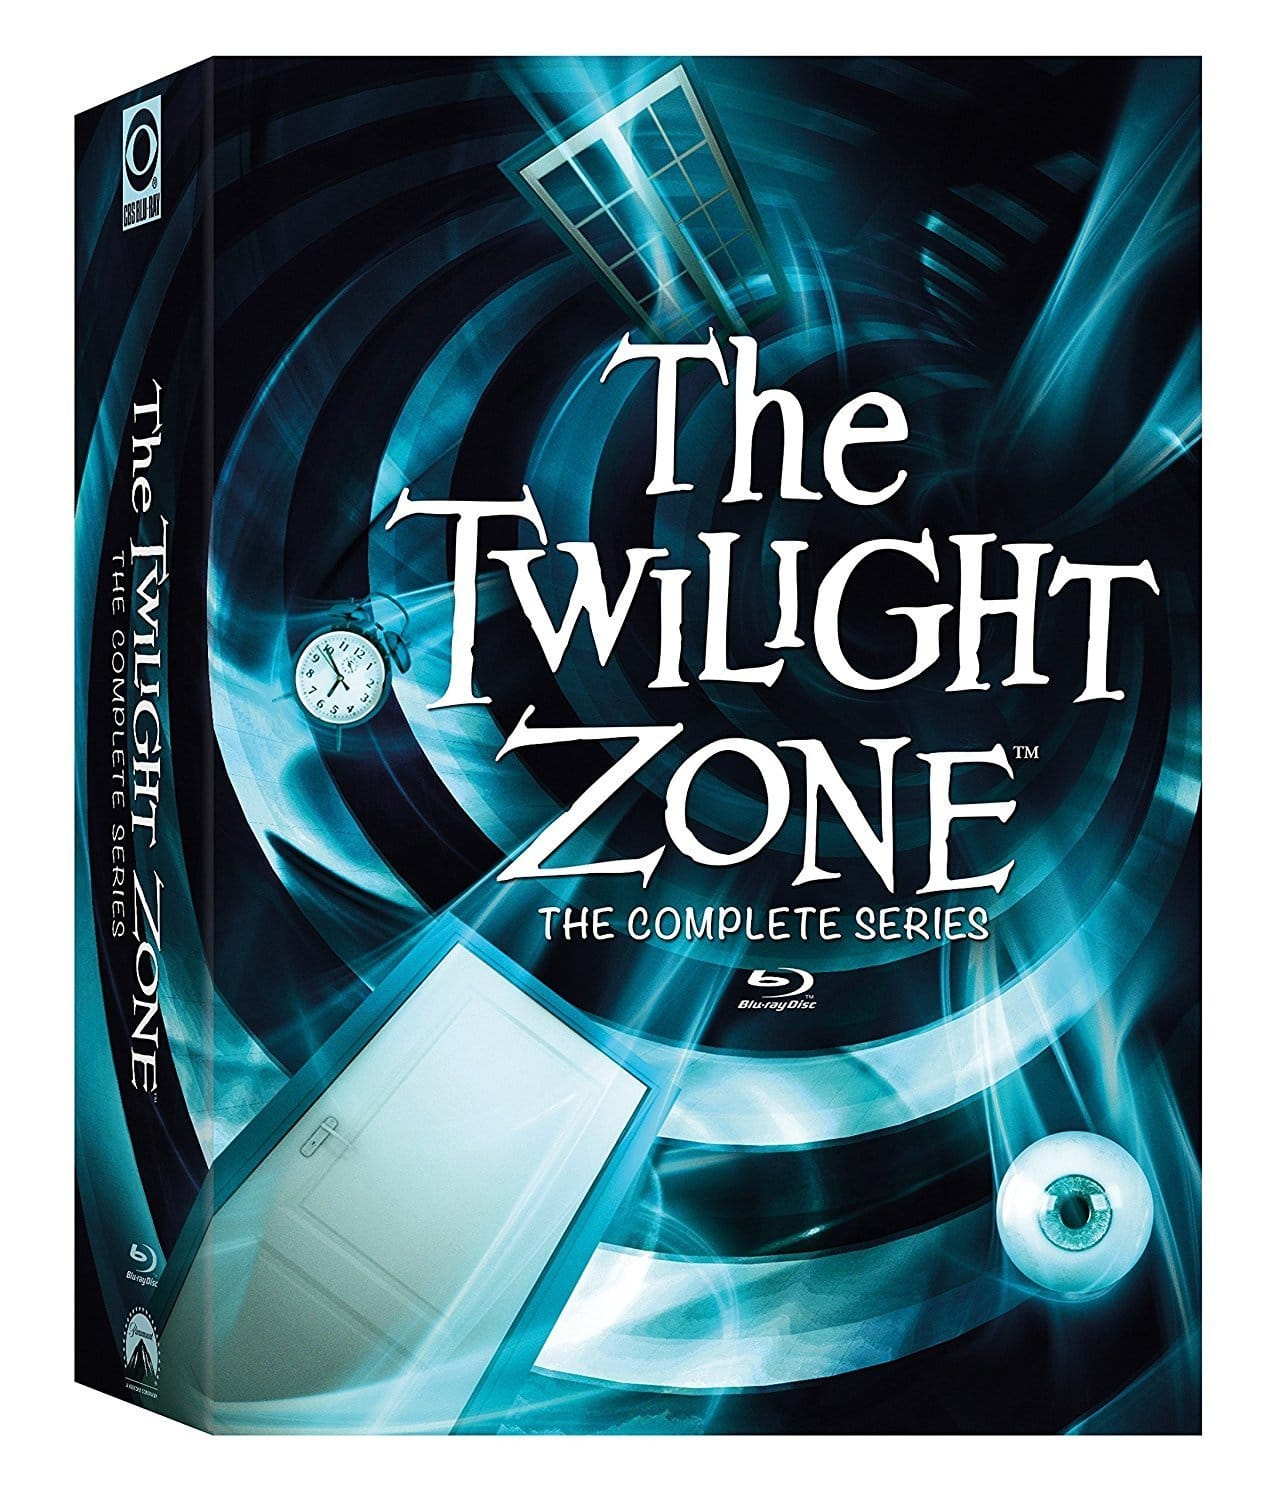 Twilight Zone: The Complete Series Pre-Order (Blu-ray) $70 + Free Shipping